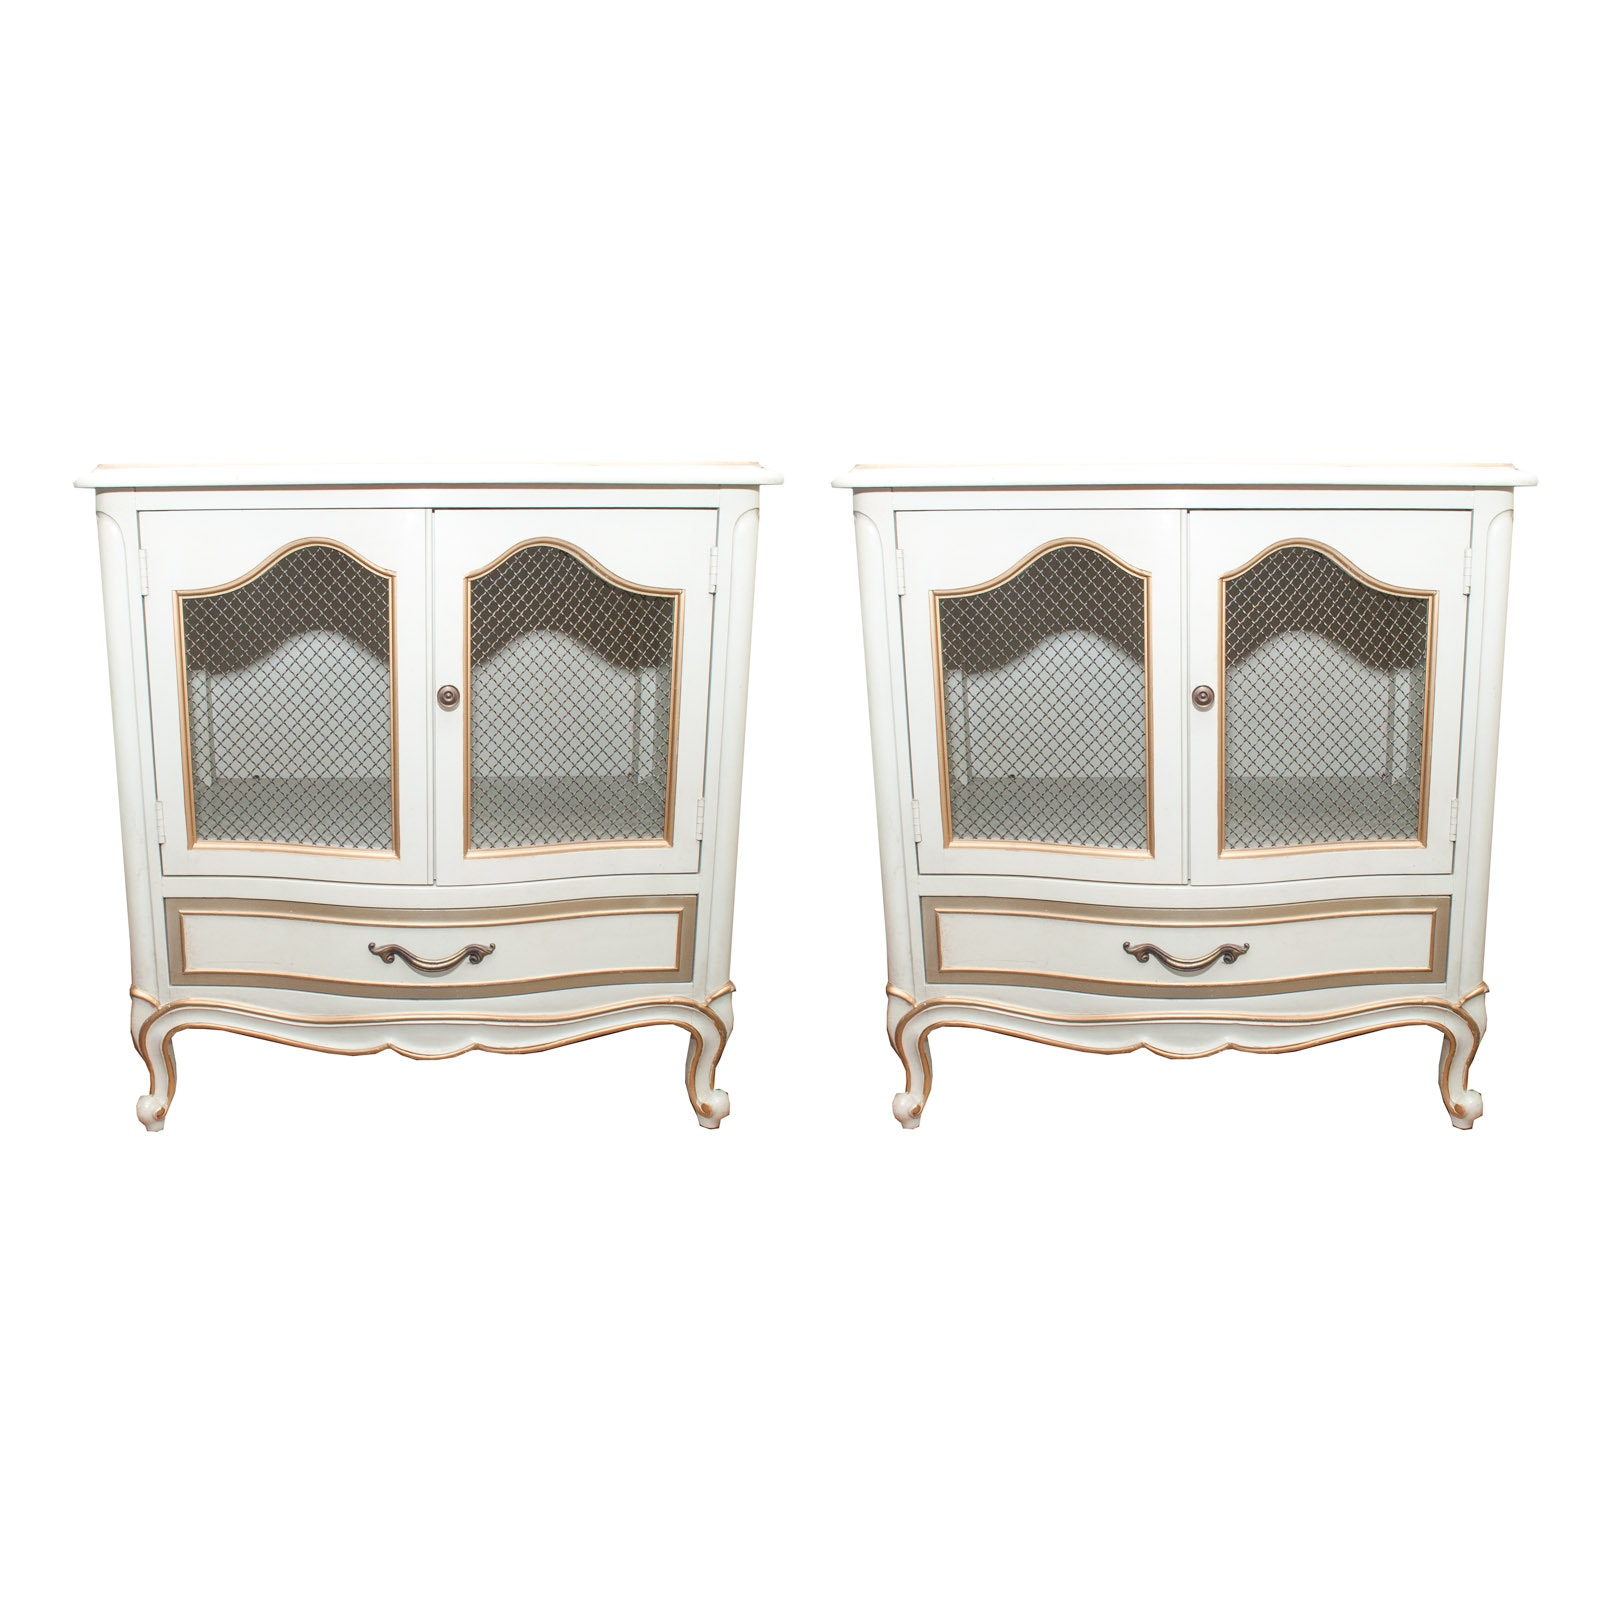 Pair of Vintage Drexel Furniture Gold and Cream Night Stands